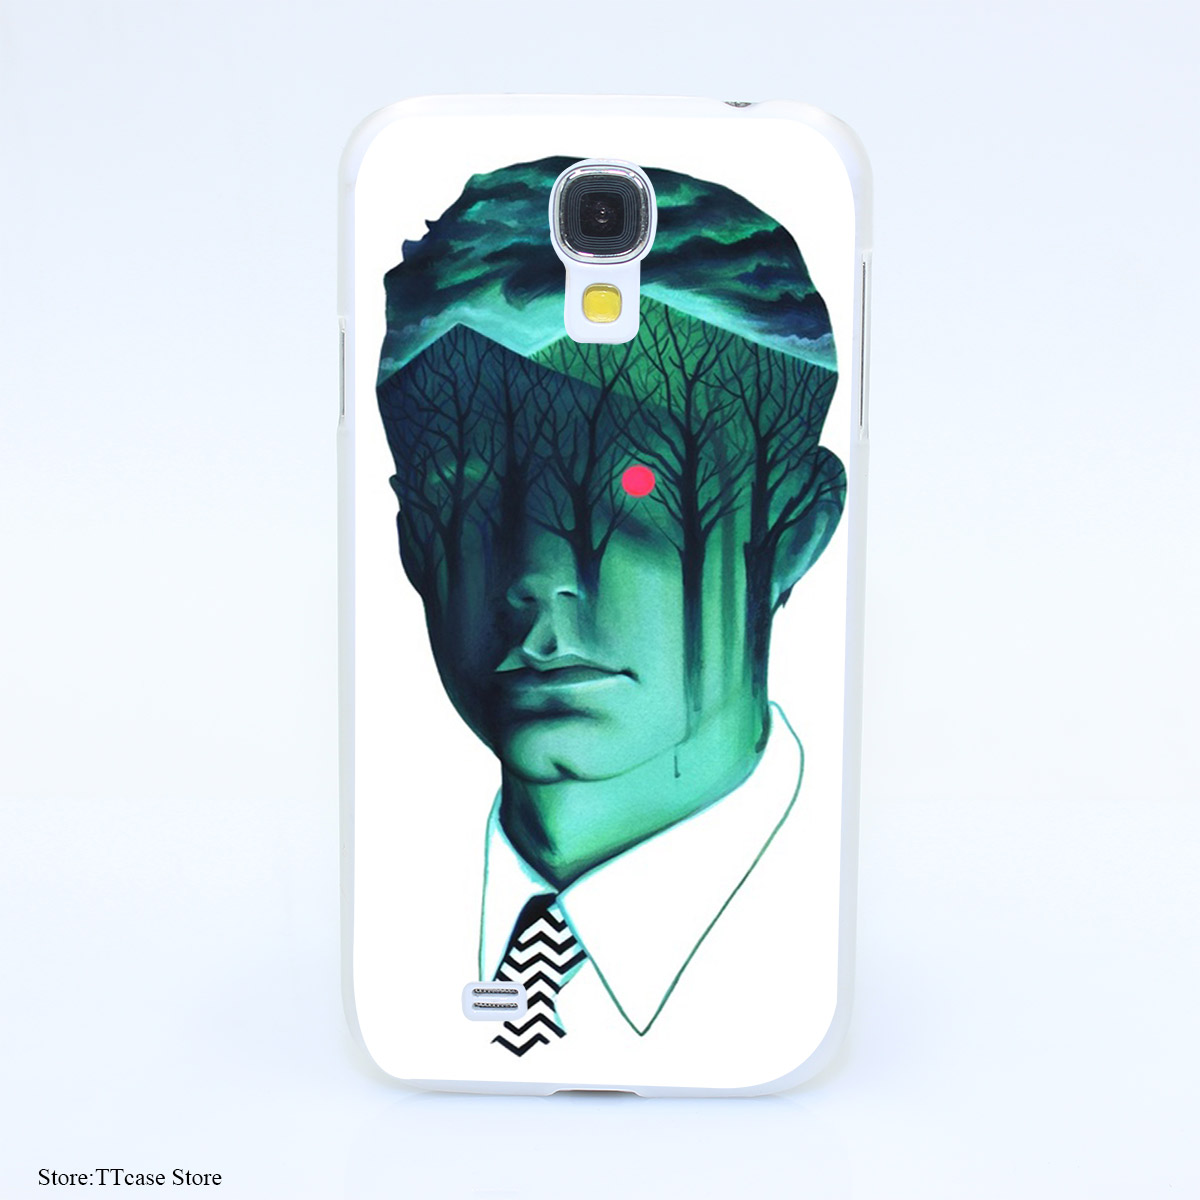 3880CA Twin Peaks Hard Transparent Case Cover for Galaxy S2 S3 S4 S5 & Mini S6 S7 & edge Plus